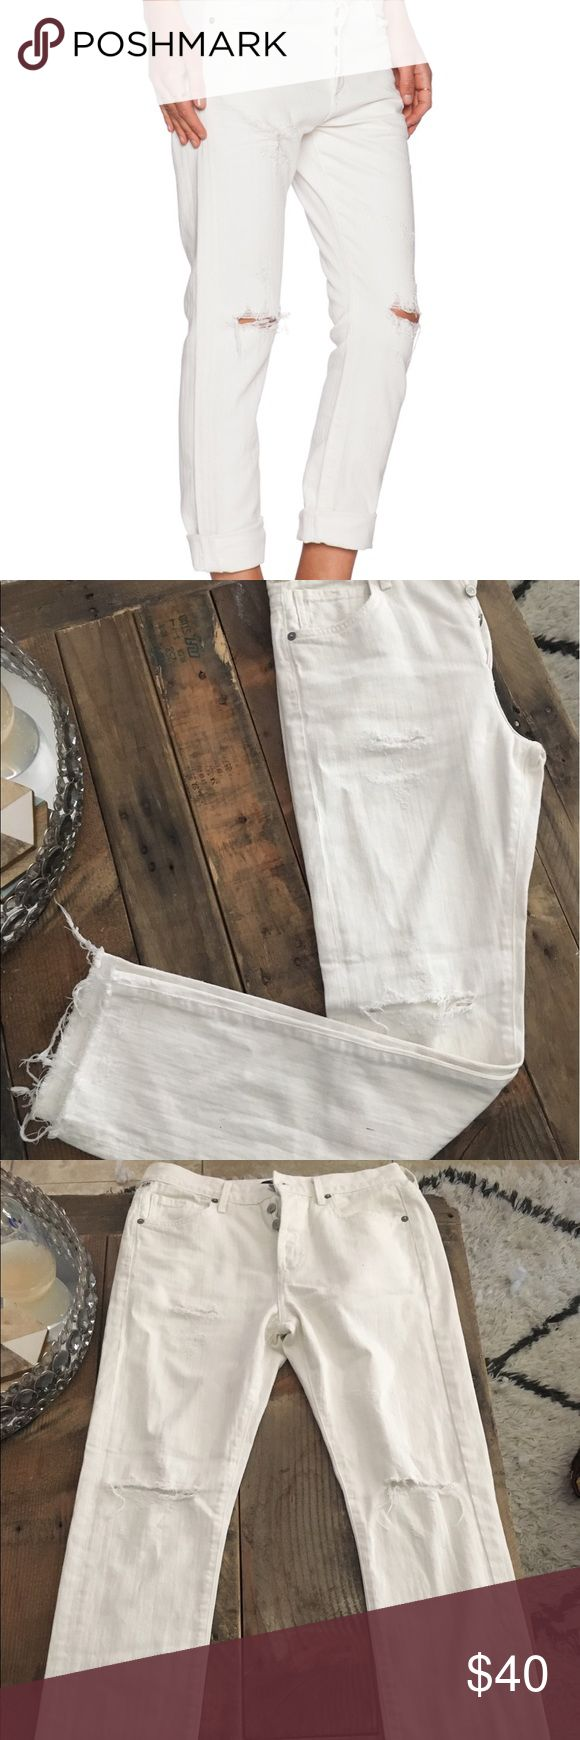 Citizens of Humanity Corey Slouchy Slim jeans EUC Citizens of Humanity Corey Slouchy Slim jeans in white. Size 25. Barely worn. Citizens of Humanity Jeans Boyfriend